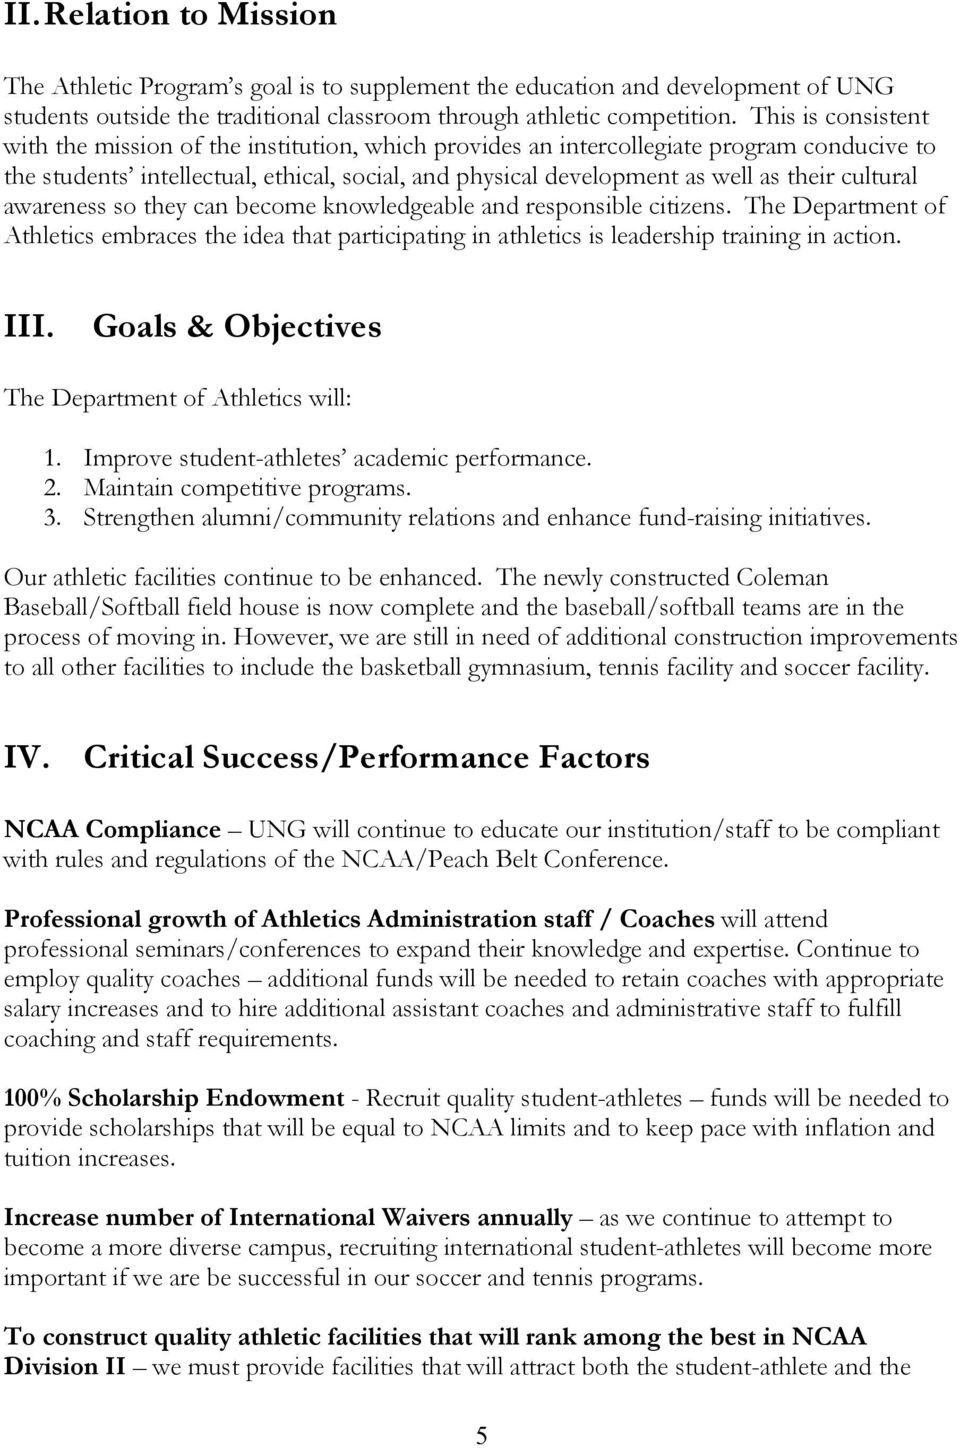 cultural awareness so they can become knowledgeable and responsible citizens. The Department of Athletics embraces the idea that participating in athletics is leadership training in action. III.